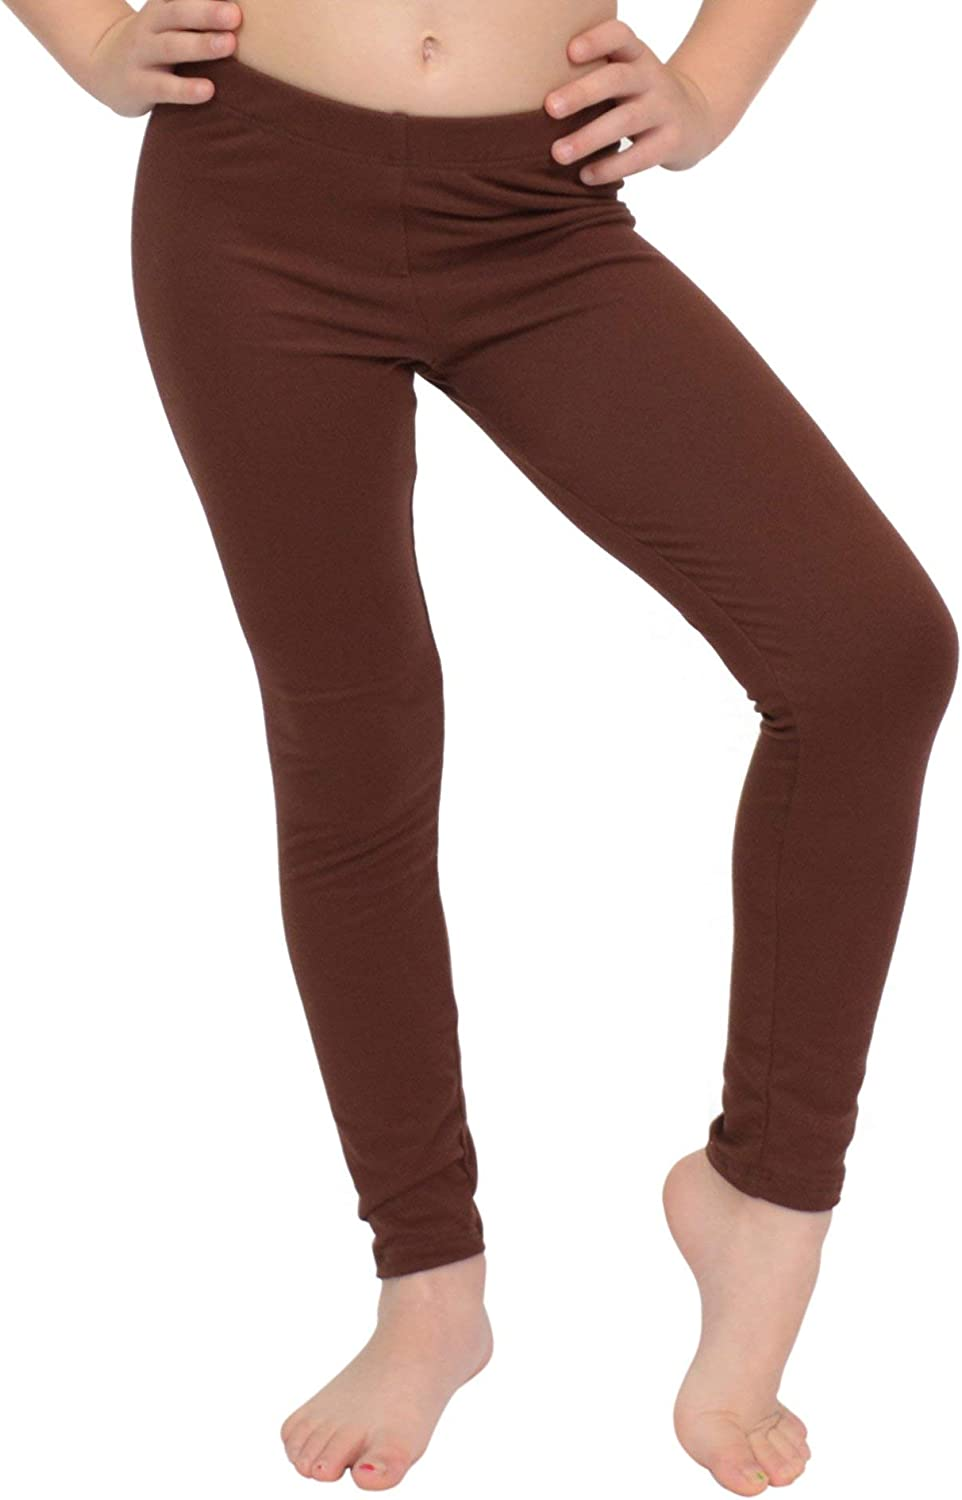 Stretch is Comfort Cotton Girl's and Women's Footless Leggings Made in The USA: Clothing